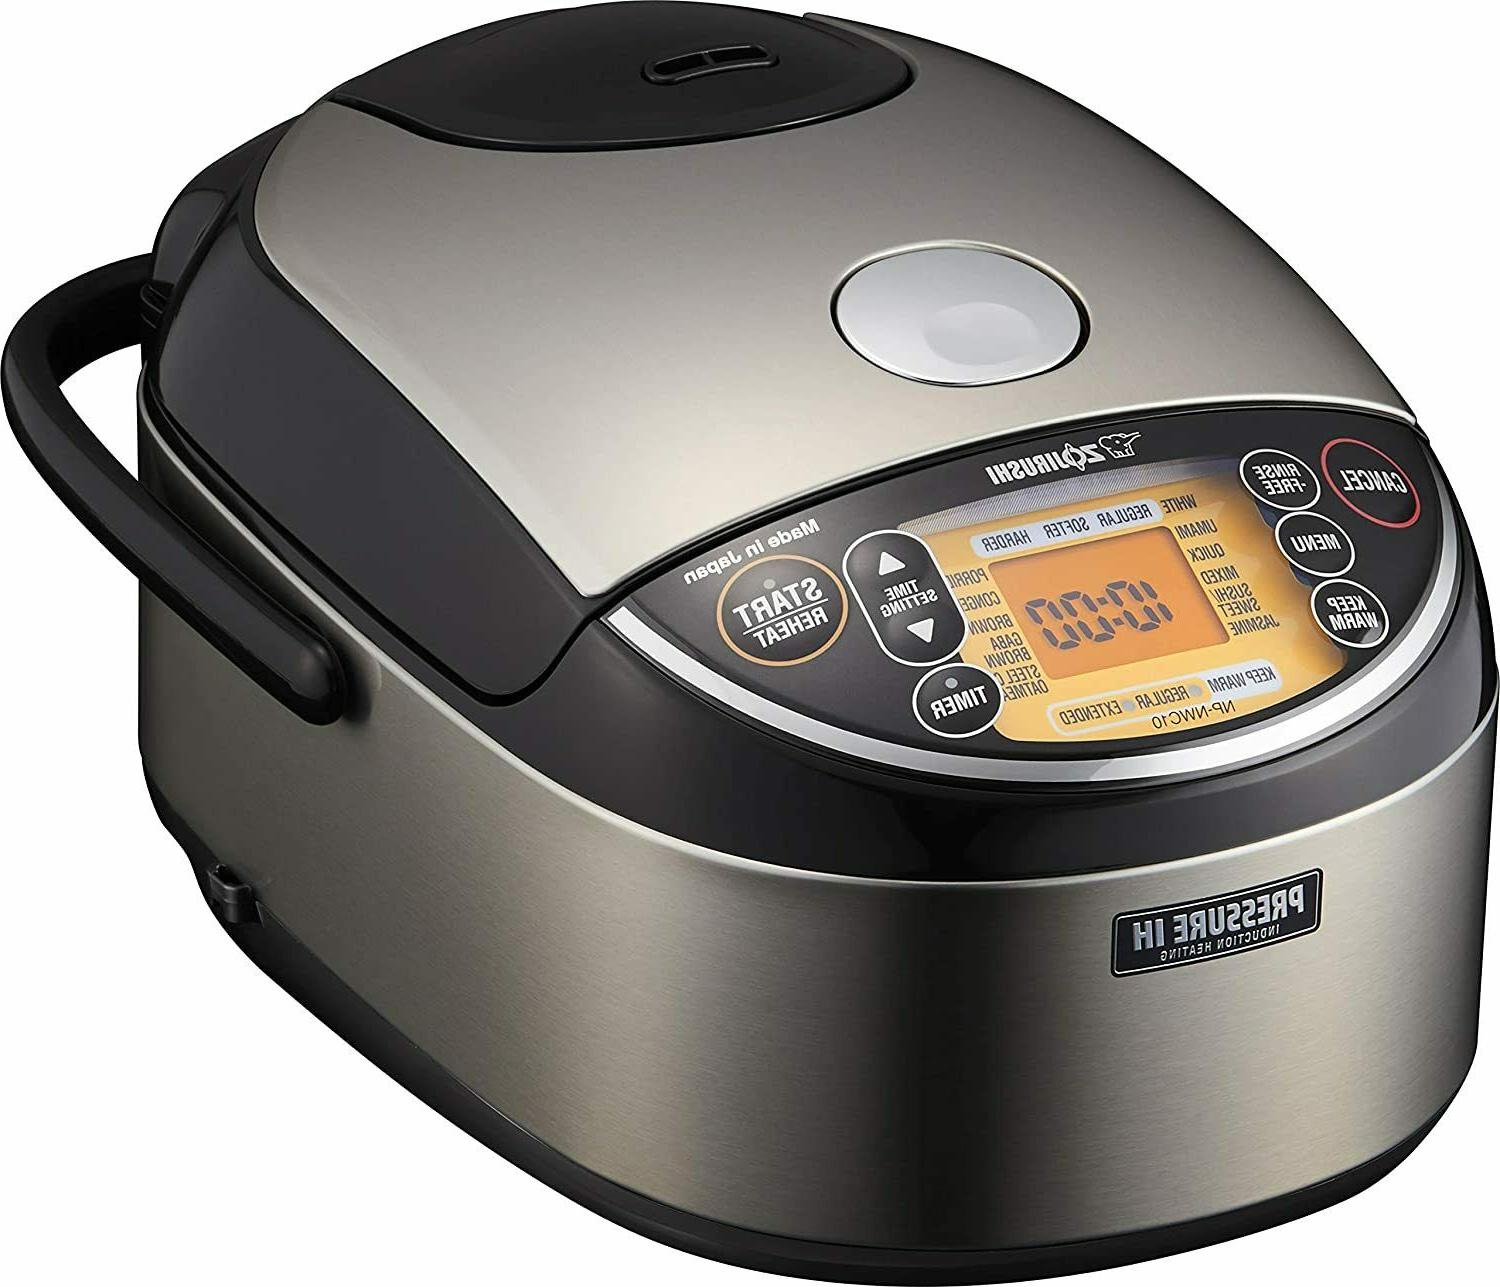 Tiger JAJ-A55U WS 3-Cup  Micom Rice Cooker with Slow Cook, S